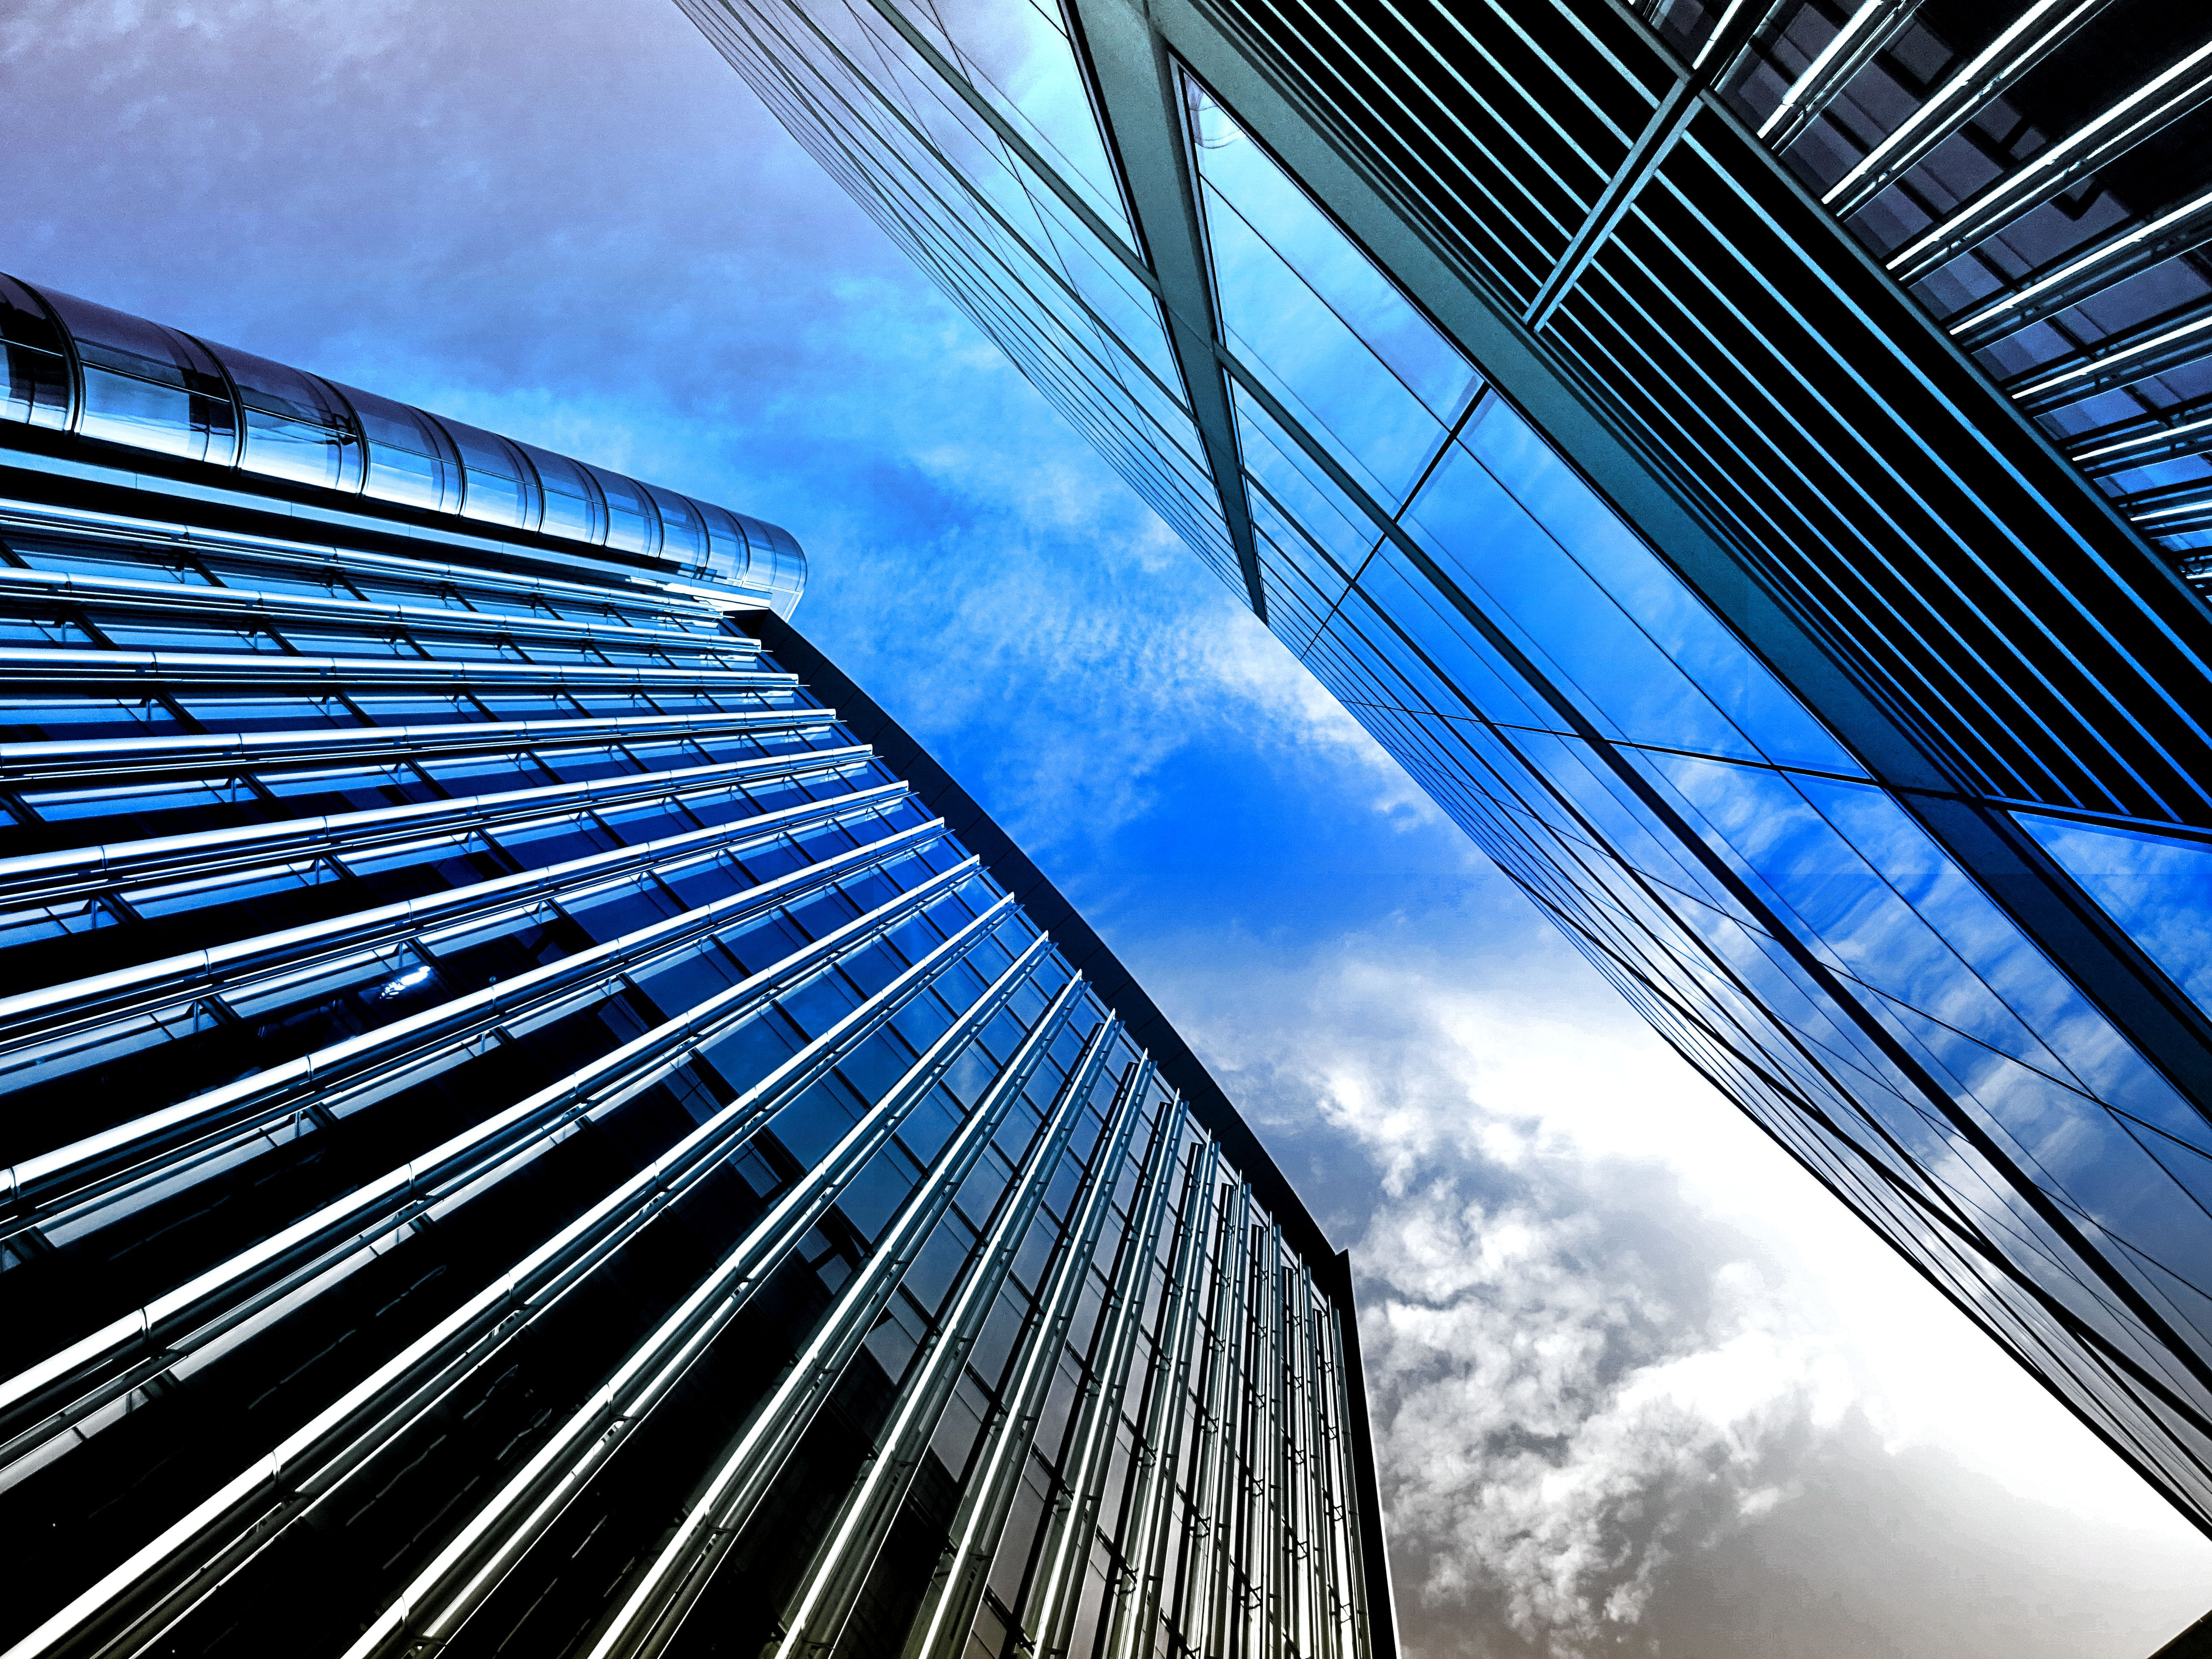 Worm's Eye View Photograph of Modern Building